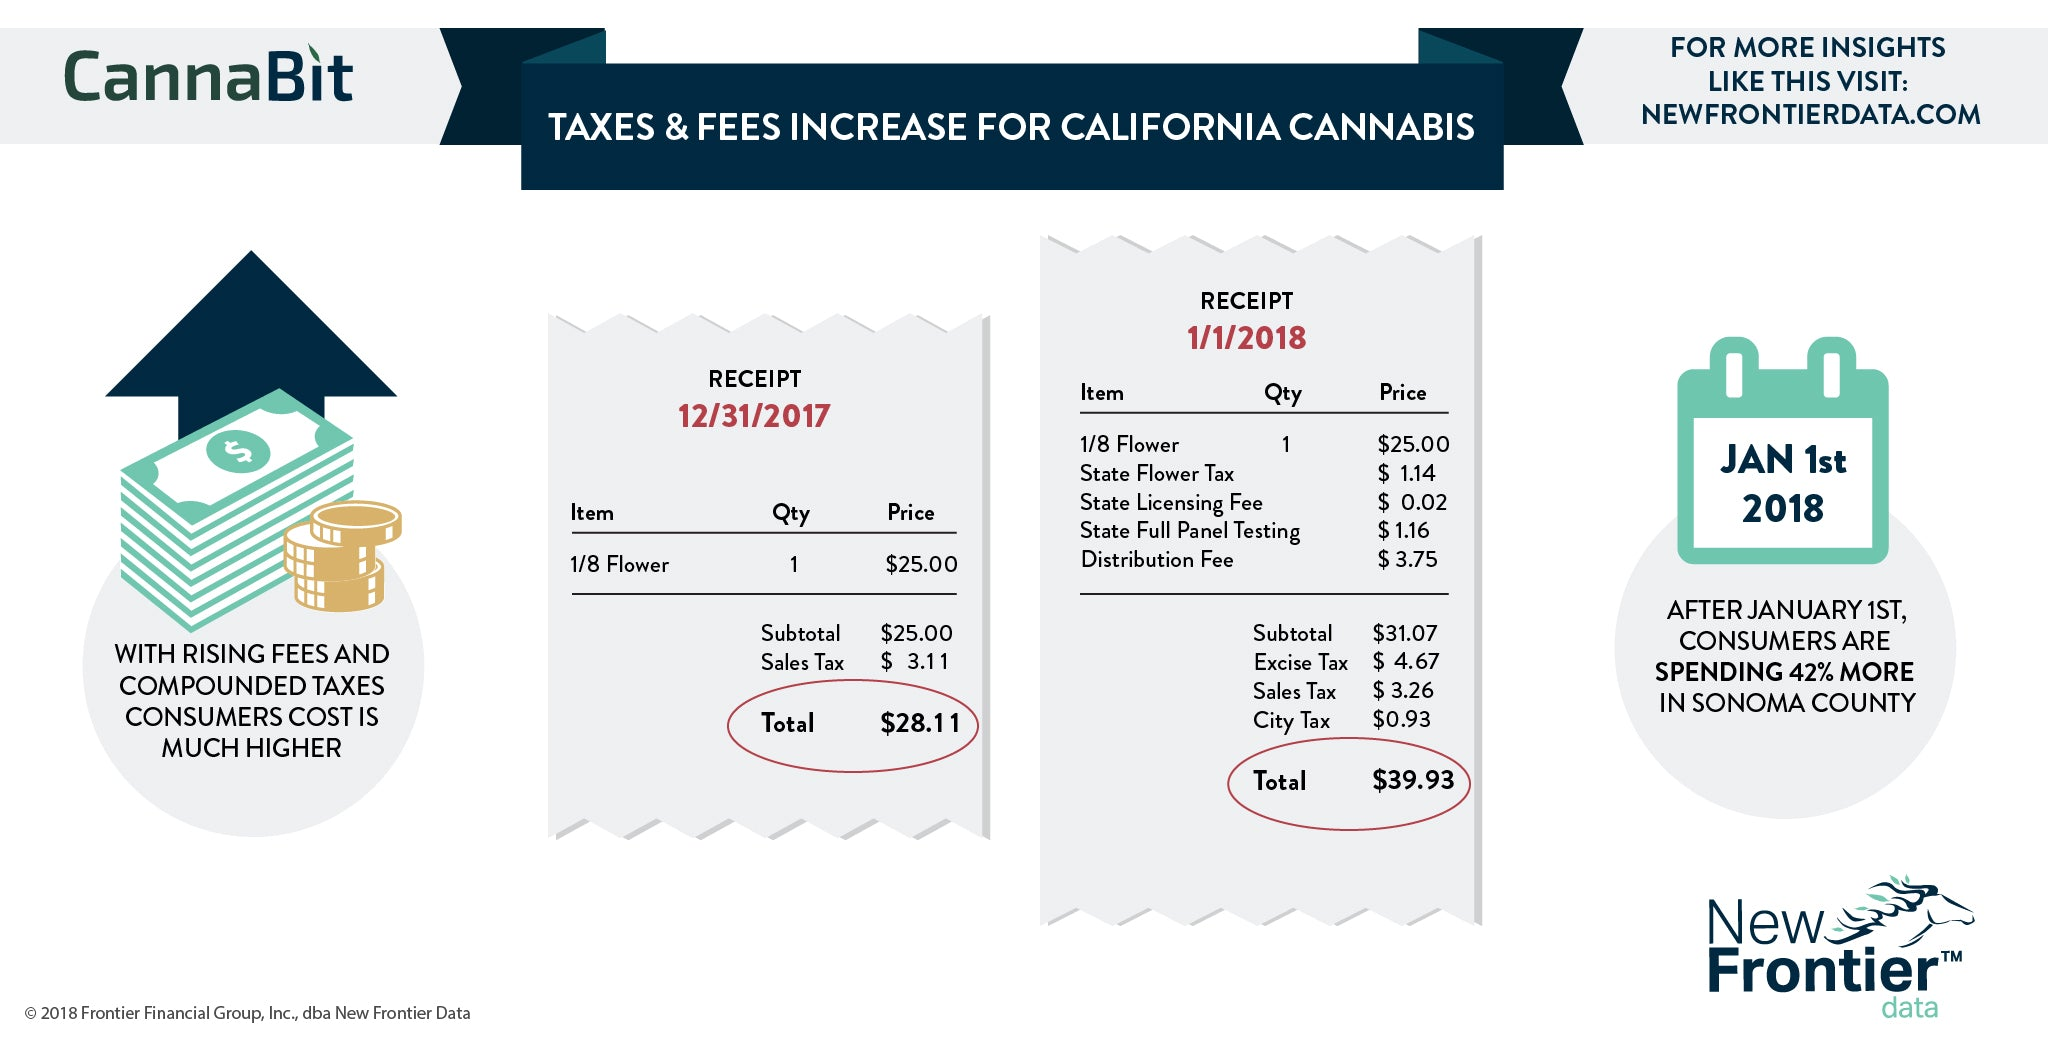 Taxes & Fees Increase for California Cannabis